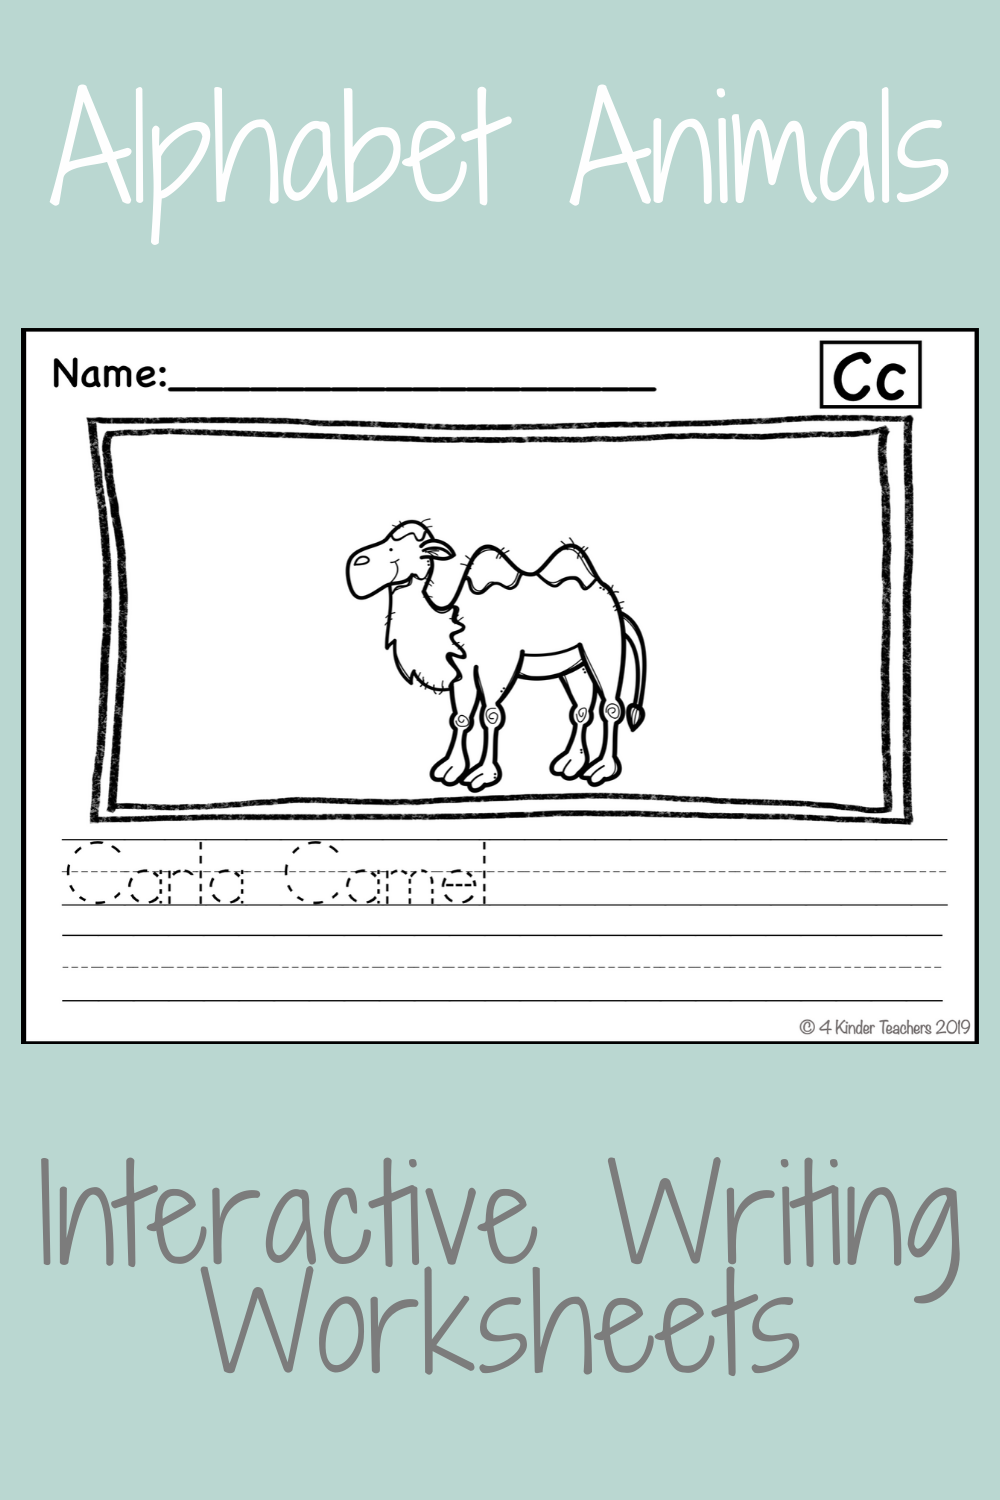 Interactive Writing: Fun and Engaging for Kindergarten